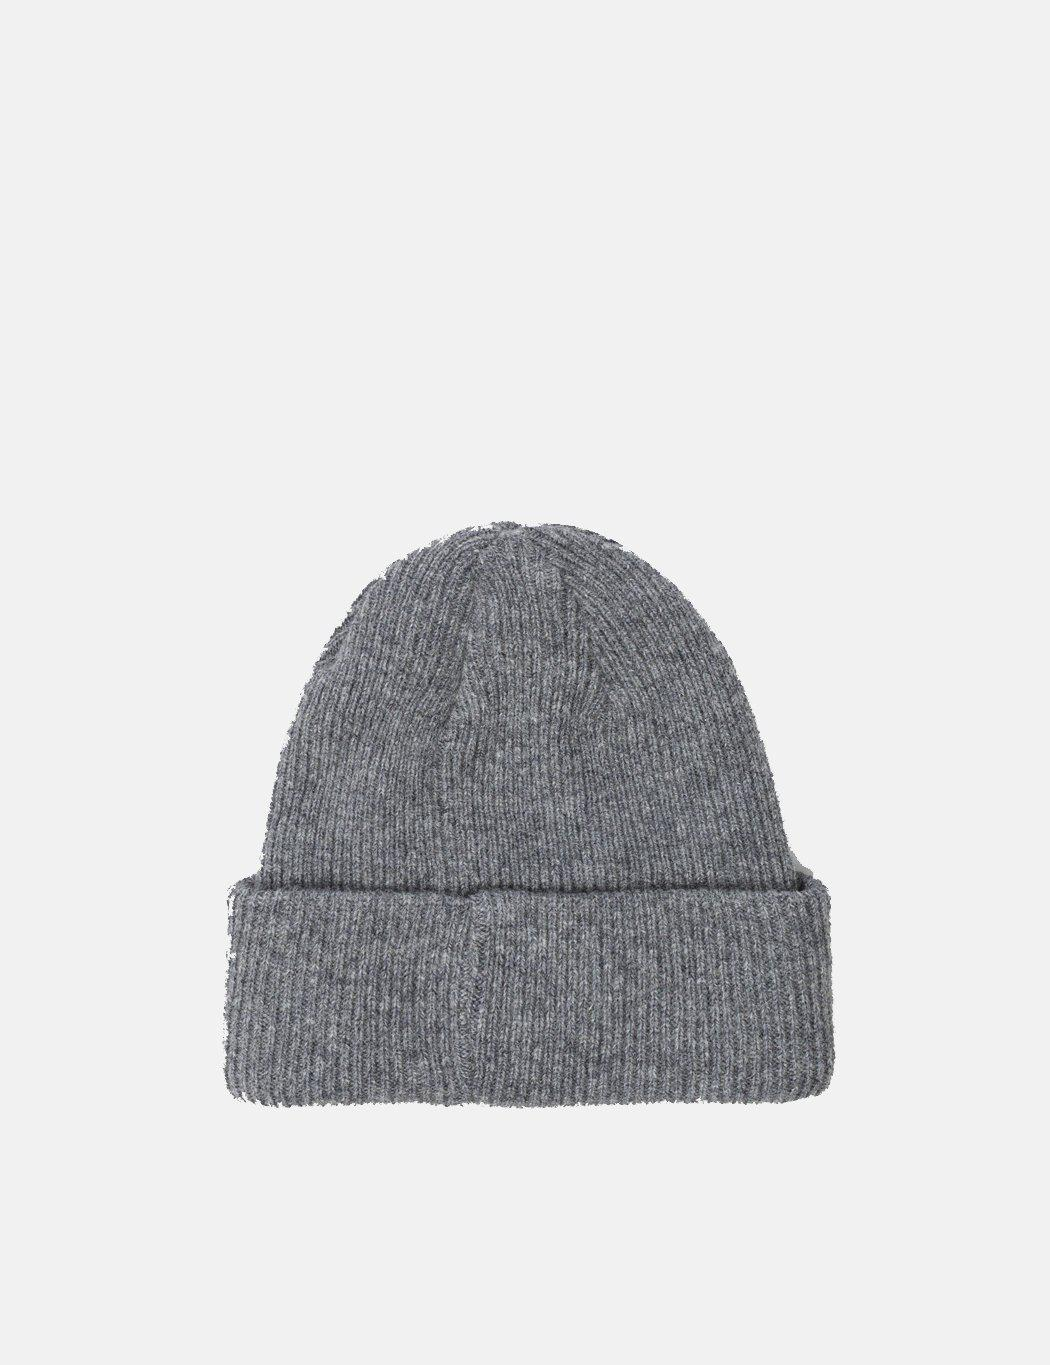 92bc22bd11b Lyst - Norse Projects Norse Beanie Hat in Gray for Men